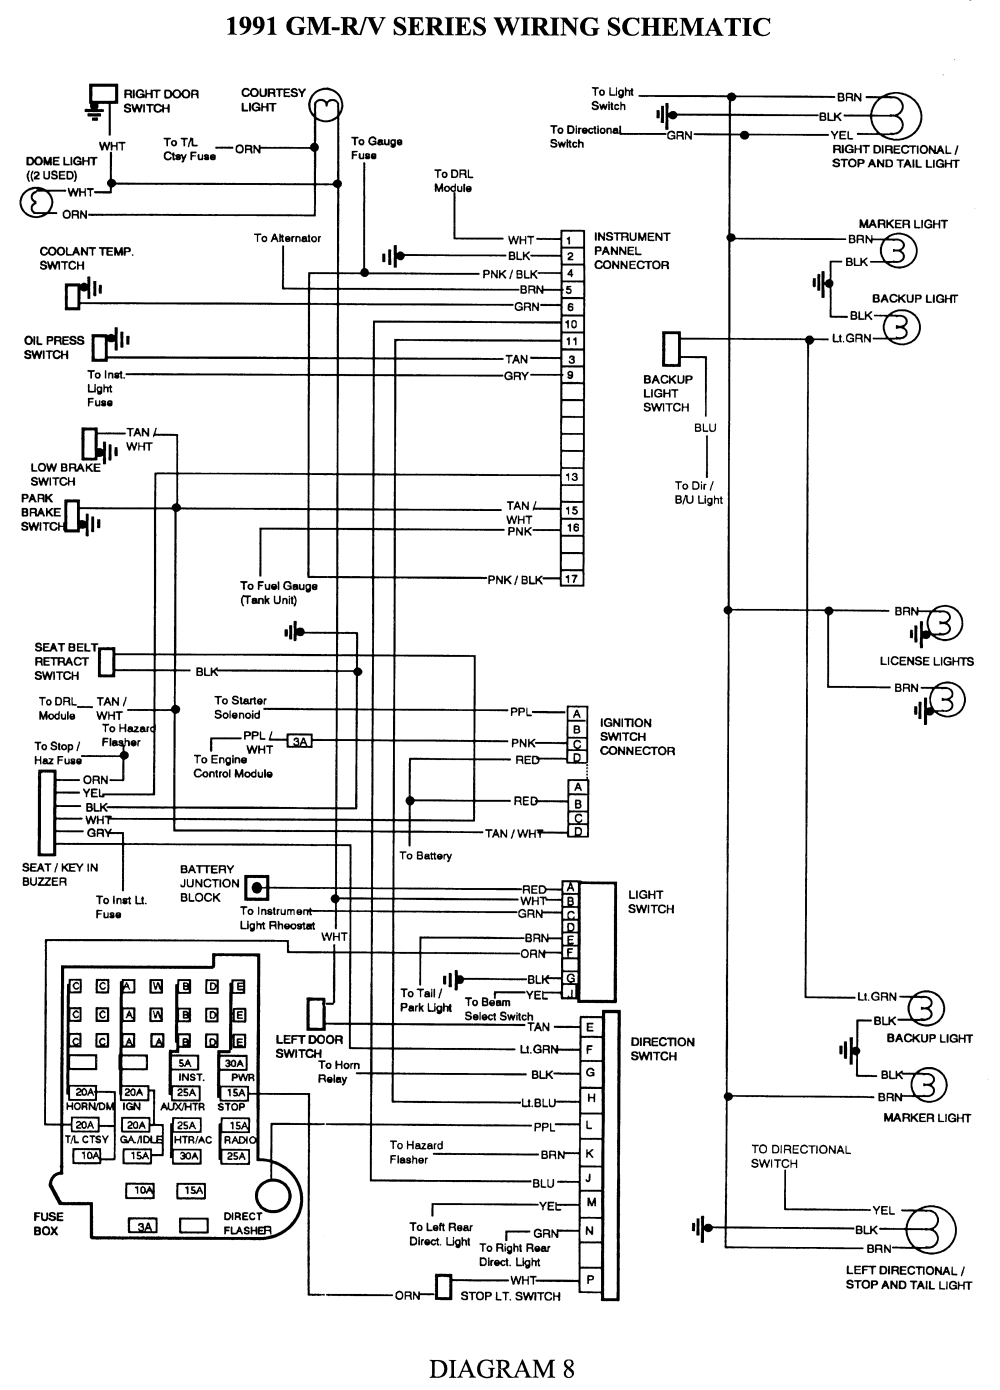 DIAGRAM] 2000 Chevy Blazer Wiring Diagram FULL Version HD Quality Wiring  Diagram - PONZYSCHEME.SIGGY2000.DEponzyscheme.siggy2000.de